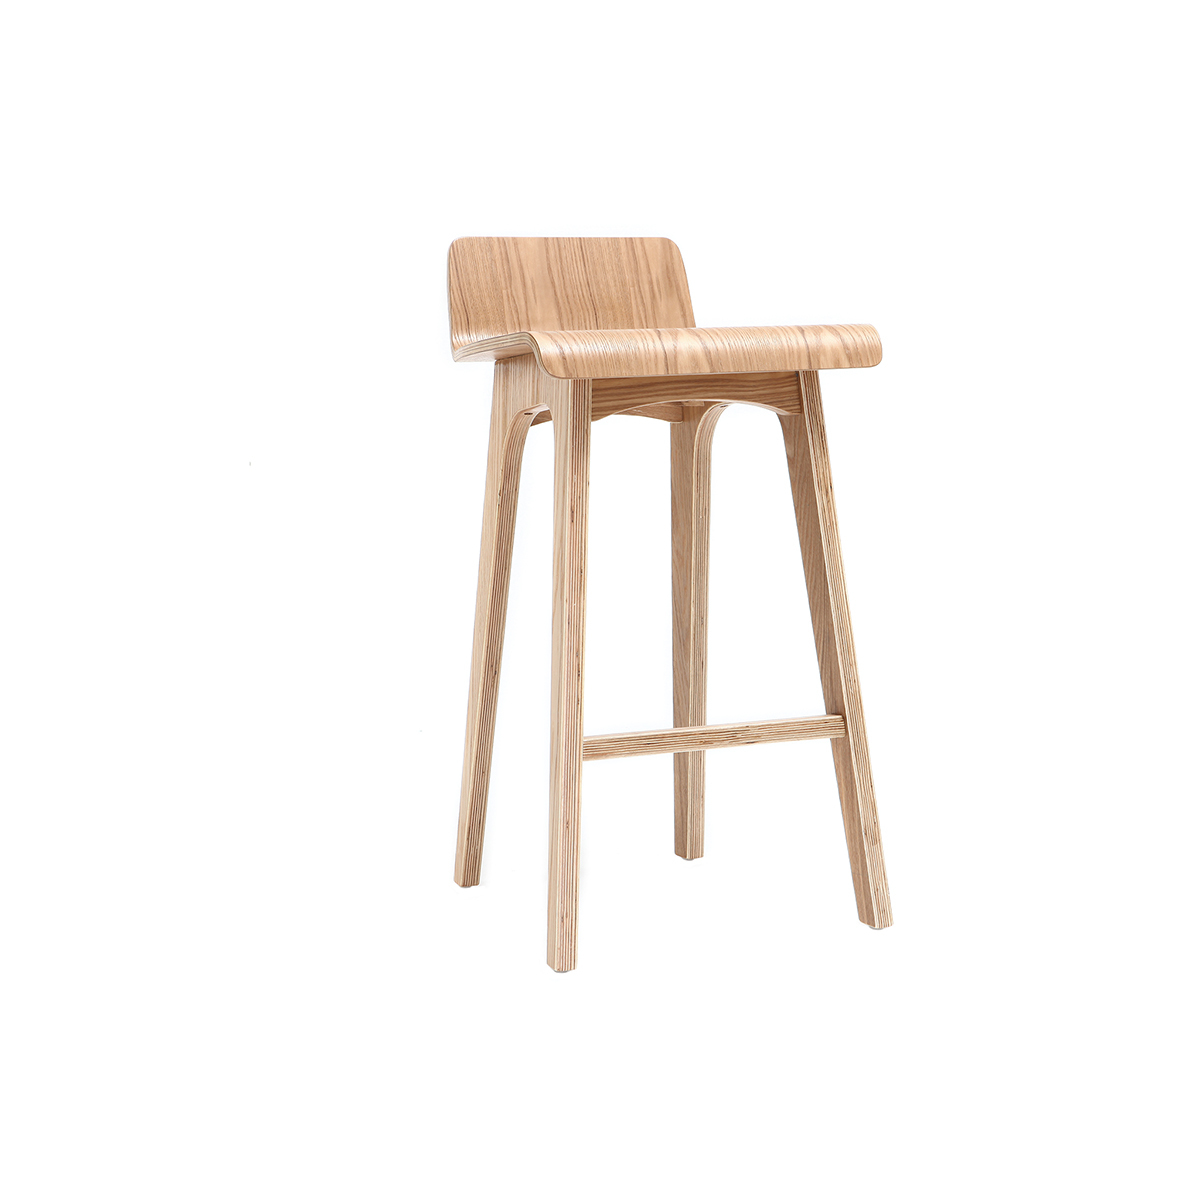 Chaise de bar scandinave 65 cm bois naturel BALTIK